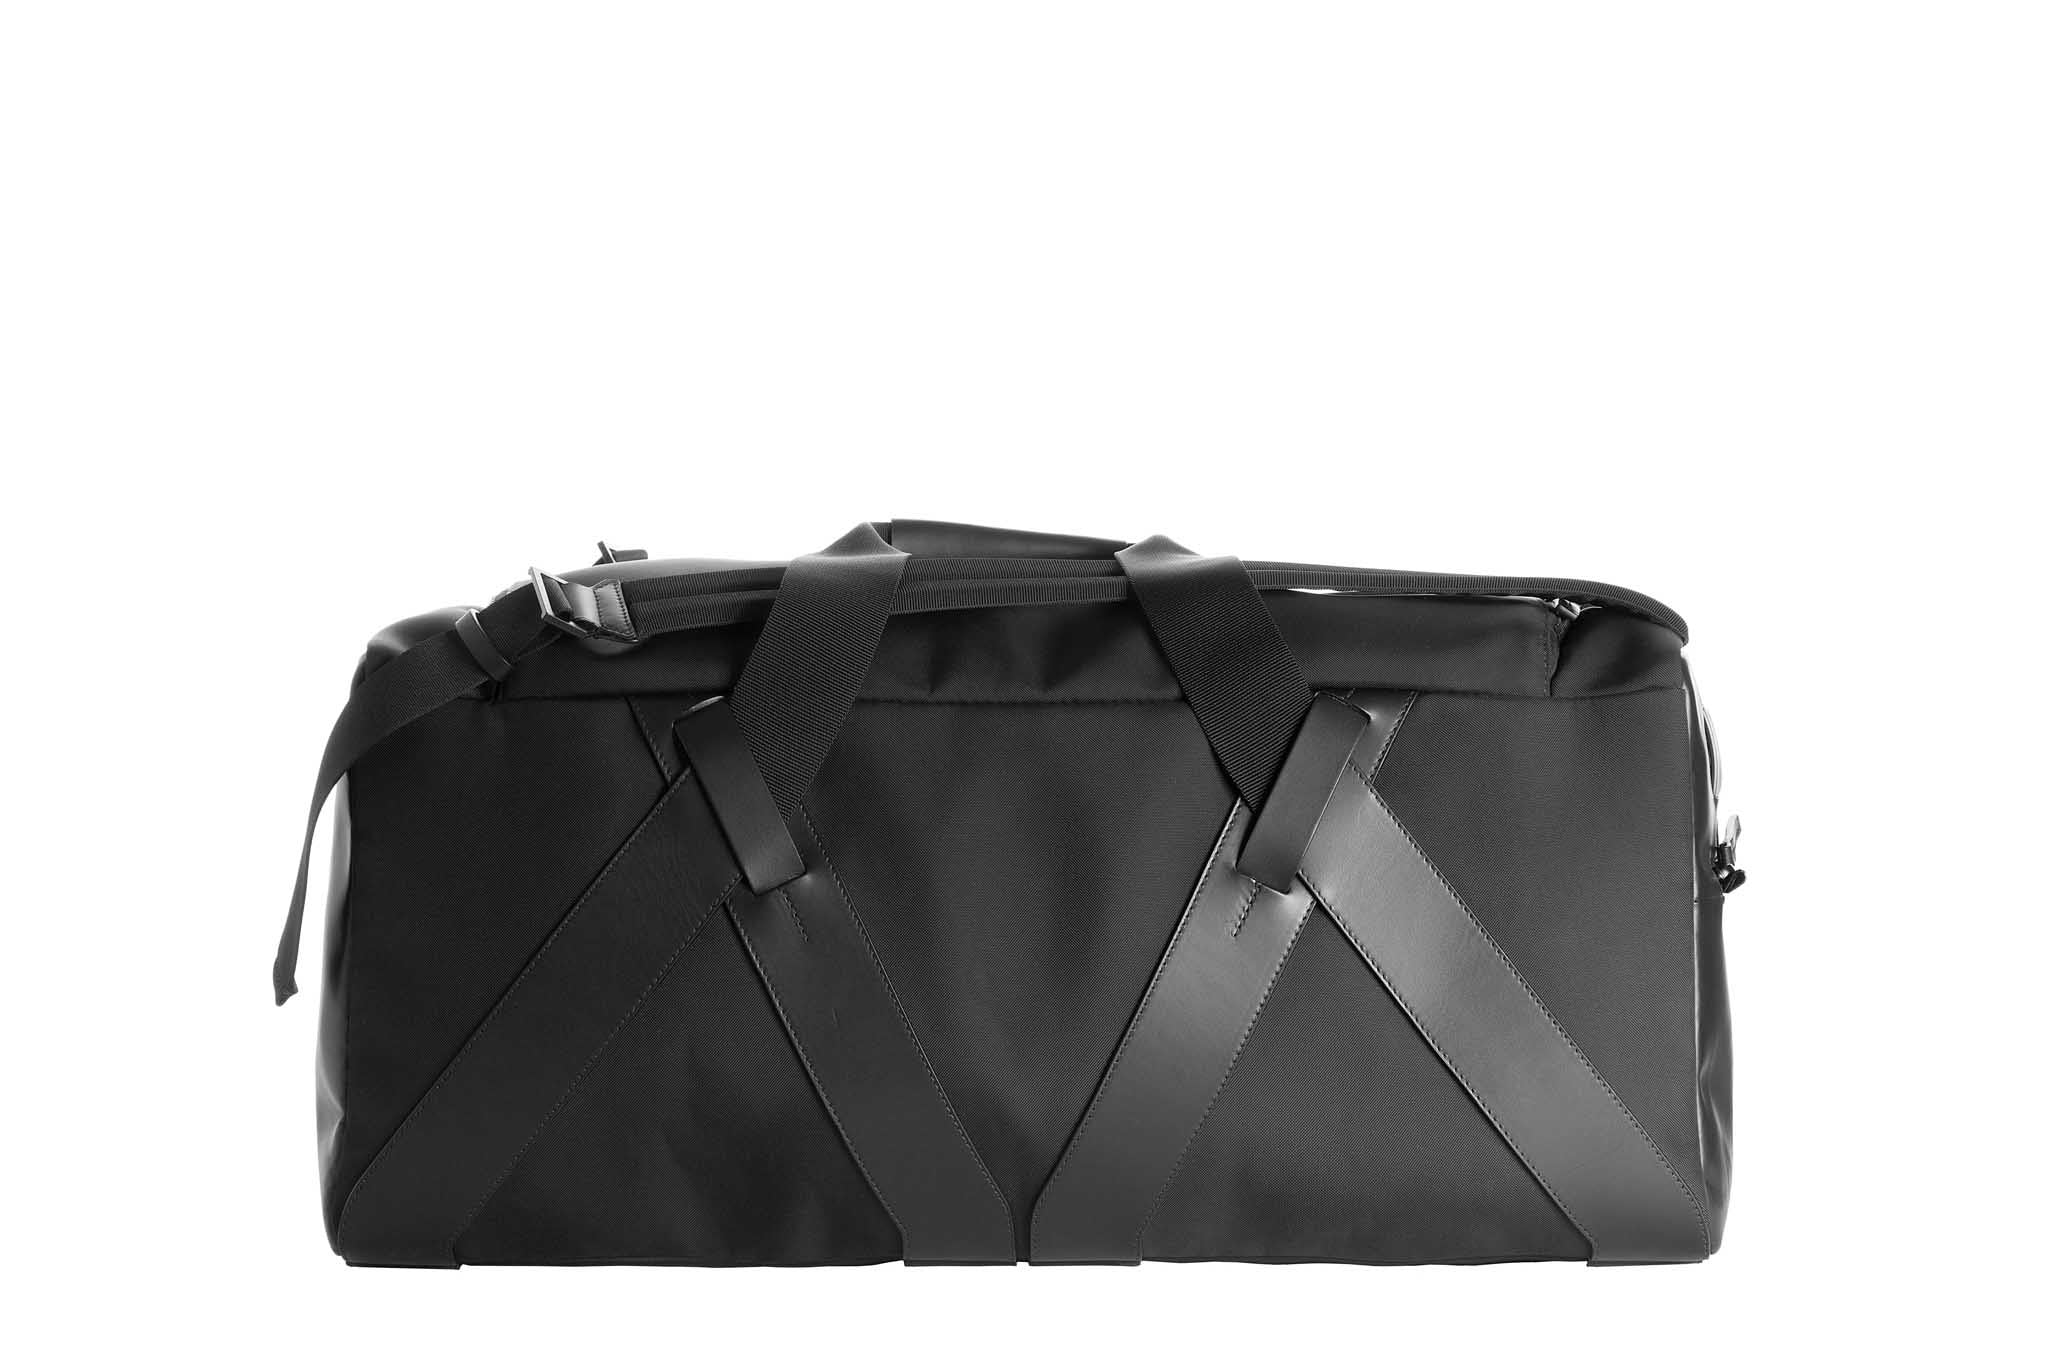 Fabric + Leather Duffle